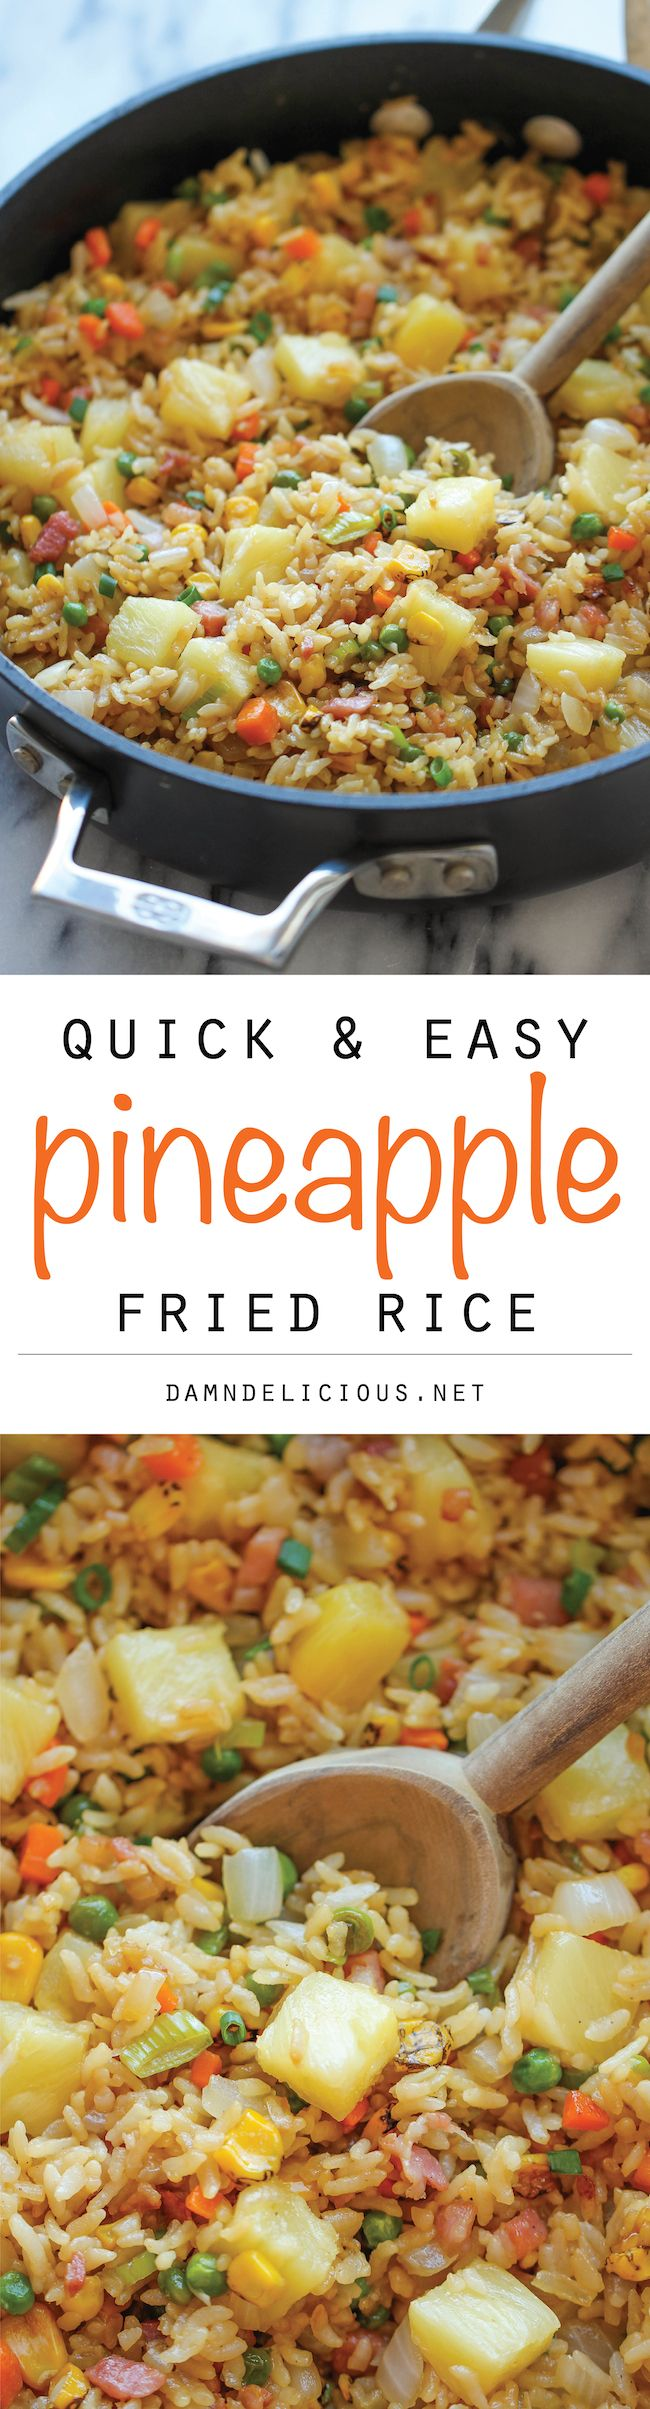 Pineapple Fried Rice – A quick and easy weeknight meal thats so much cheaper, tastier and healthier than take-out!